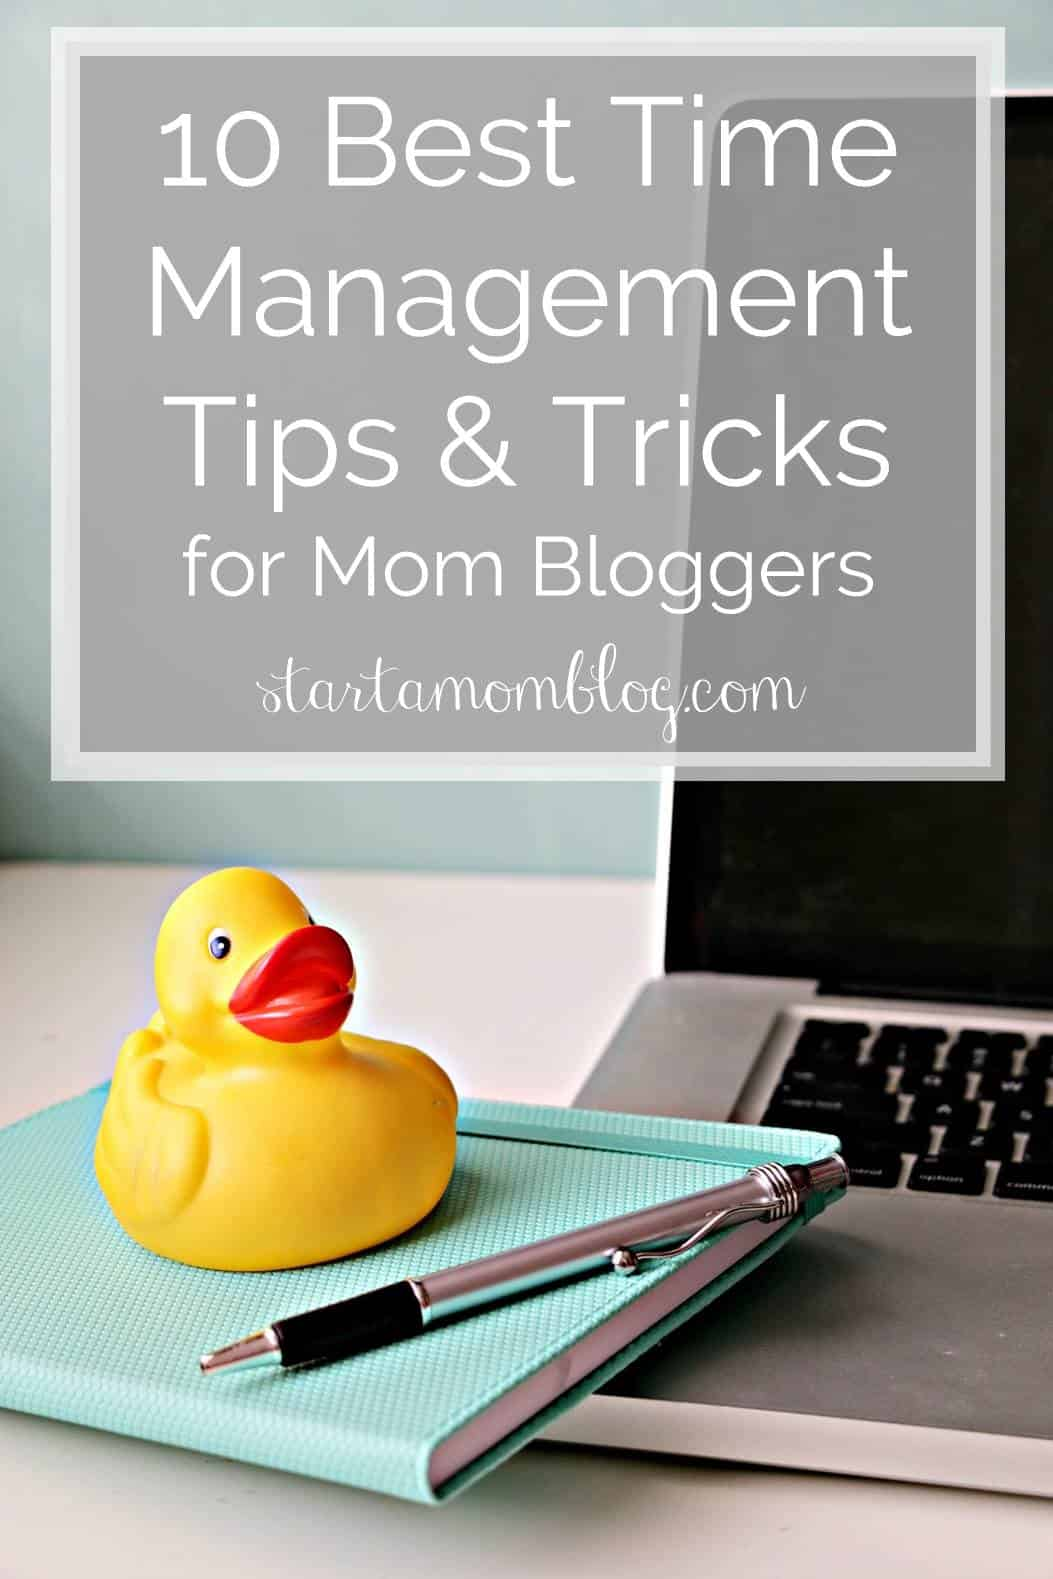 10 time management tips for mom bloggers